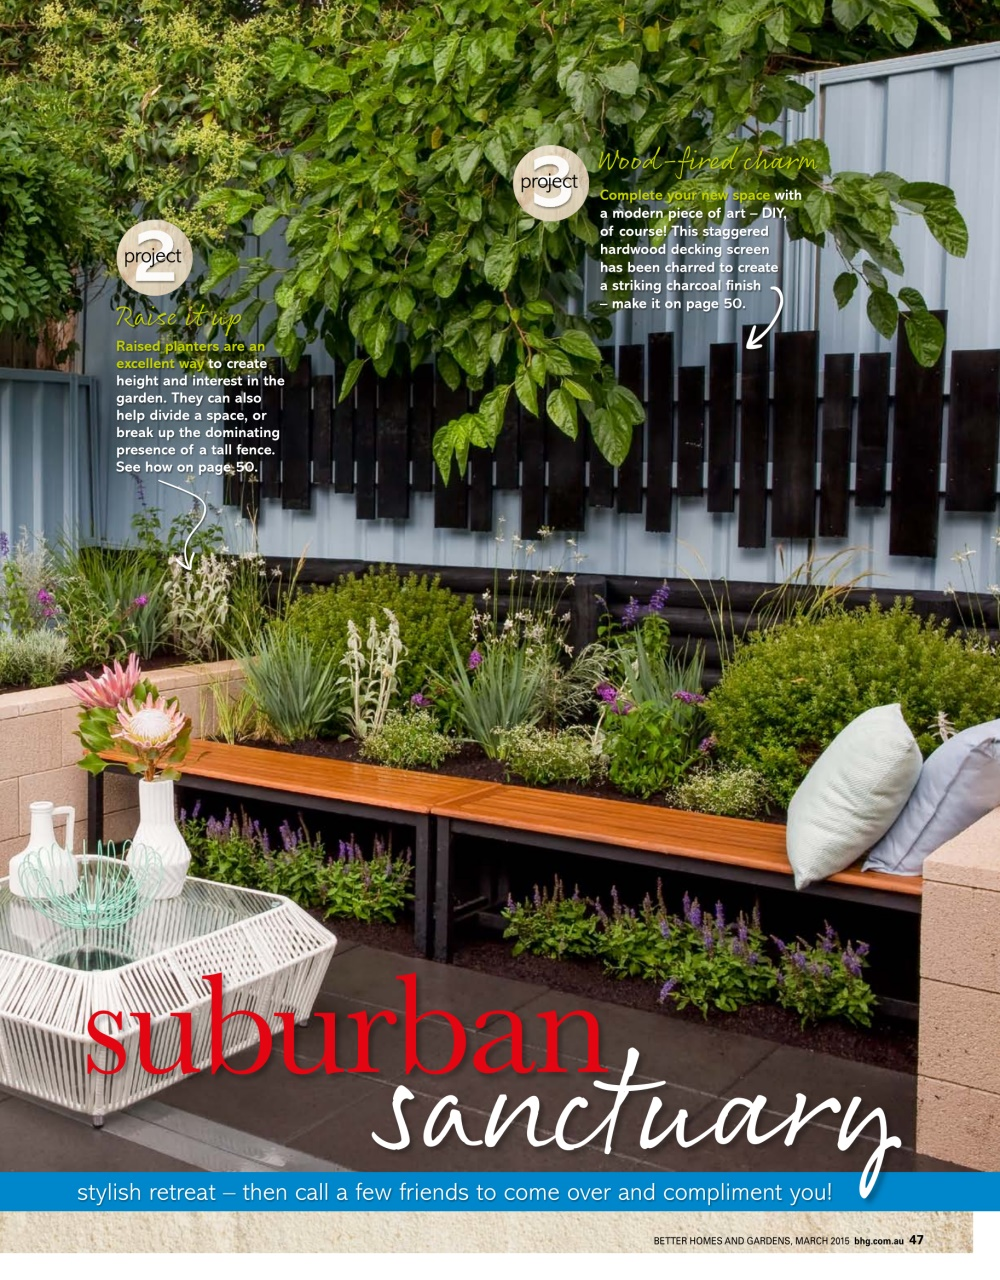 Better homes and gardens australia march 2015 March better homes and gardens